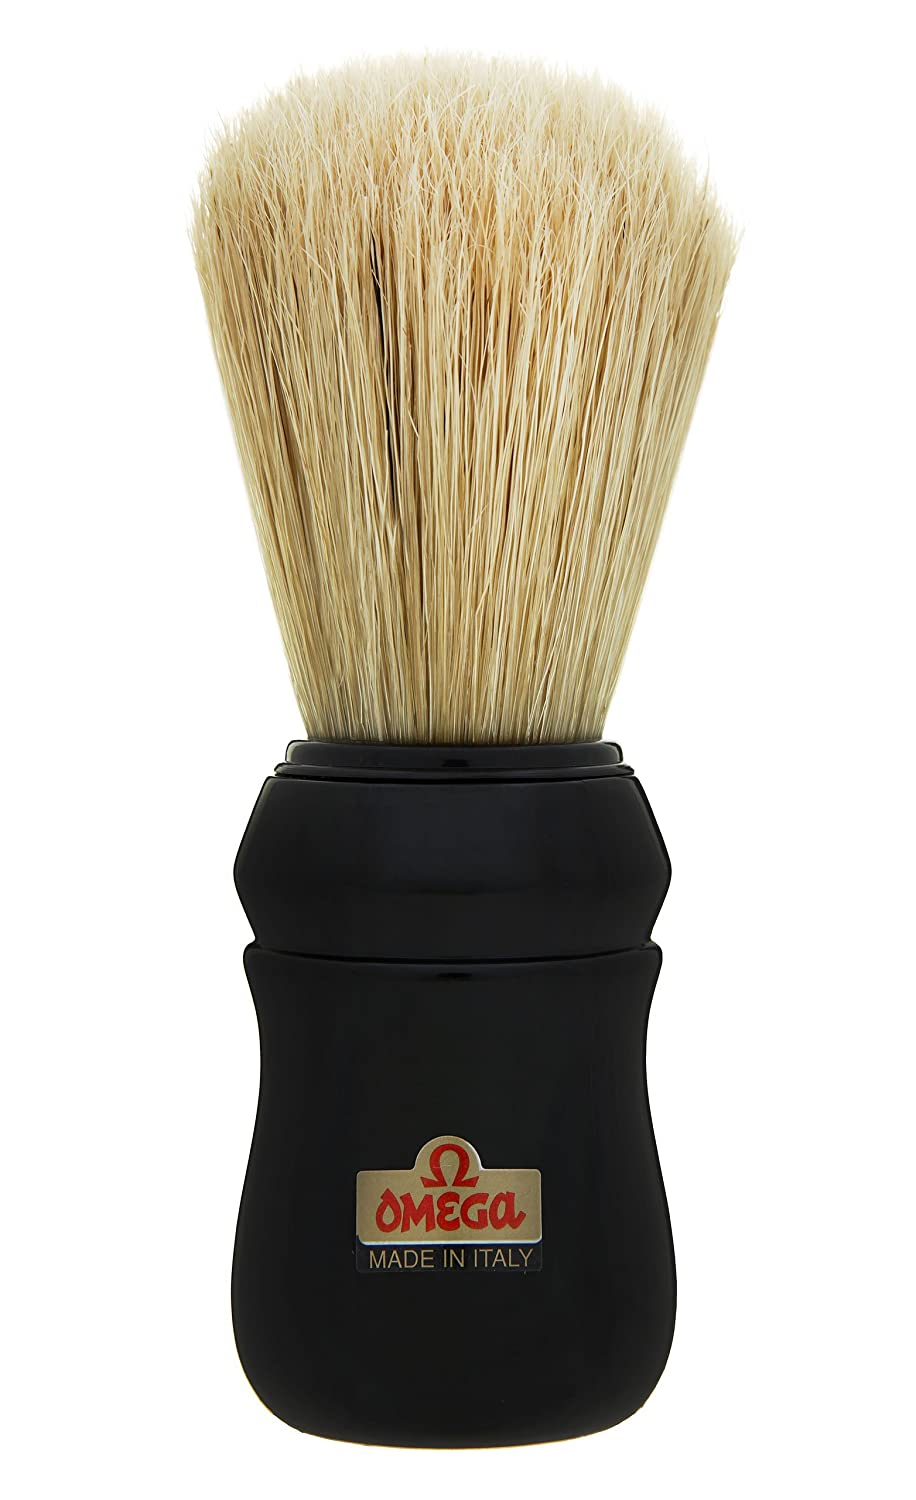 Omega Black 49 Professional Brush Bristle New products, world's highest quality popular! Shaving Large special price Pure